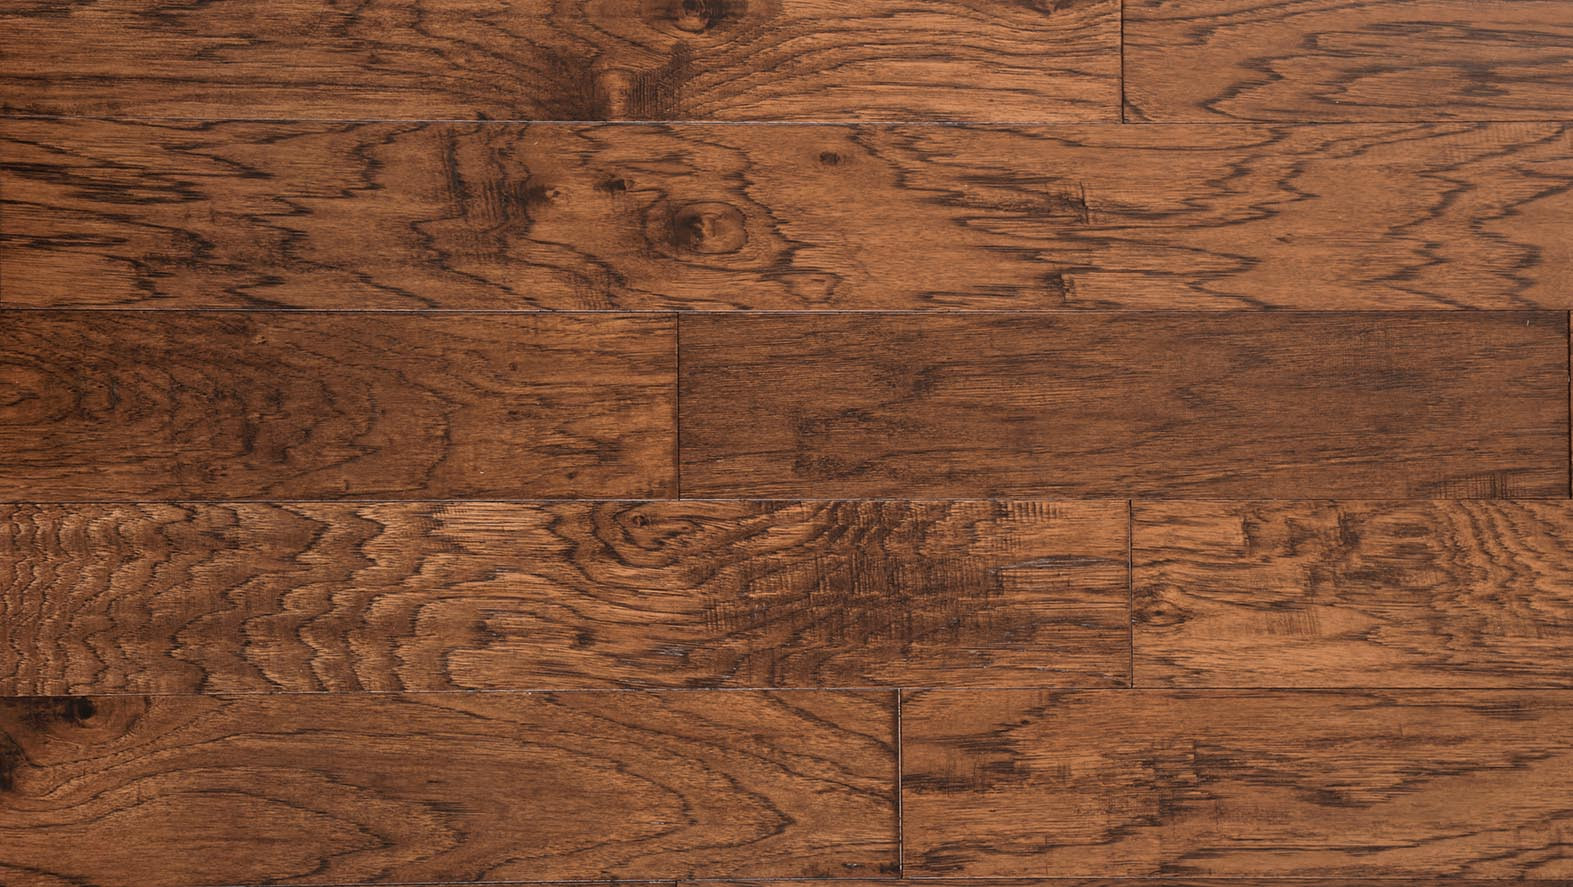 Wide Plank Hickory Engineered Hardwood Flooring Of Hardwood Flooring for 20161102011910 8548